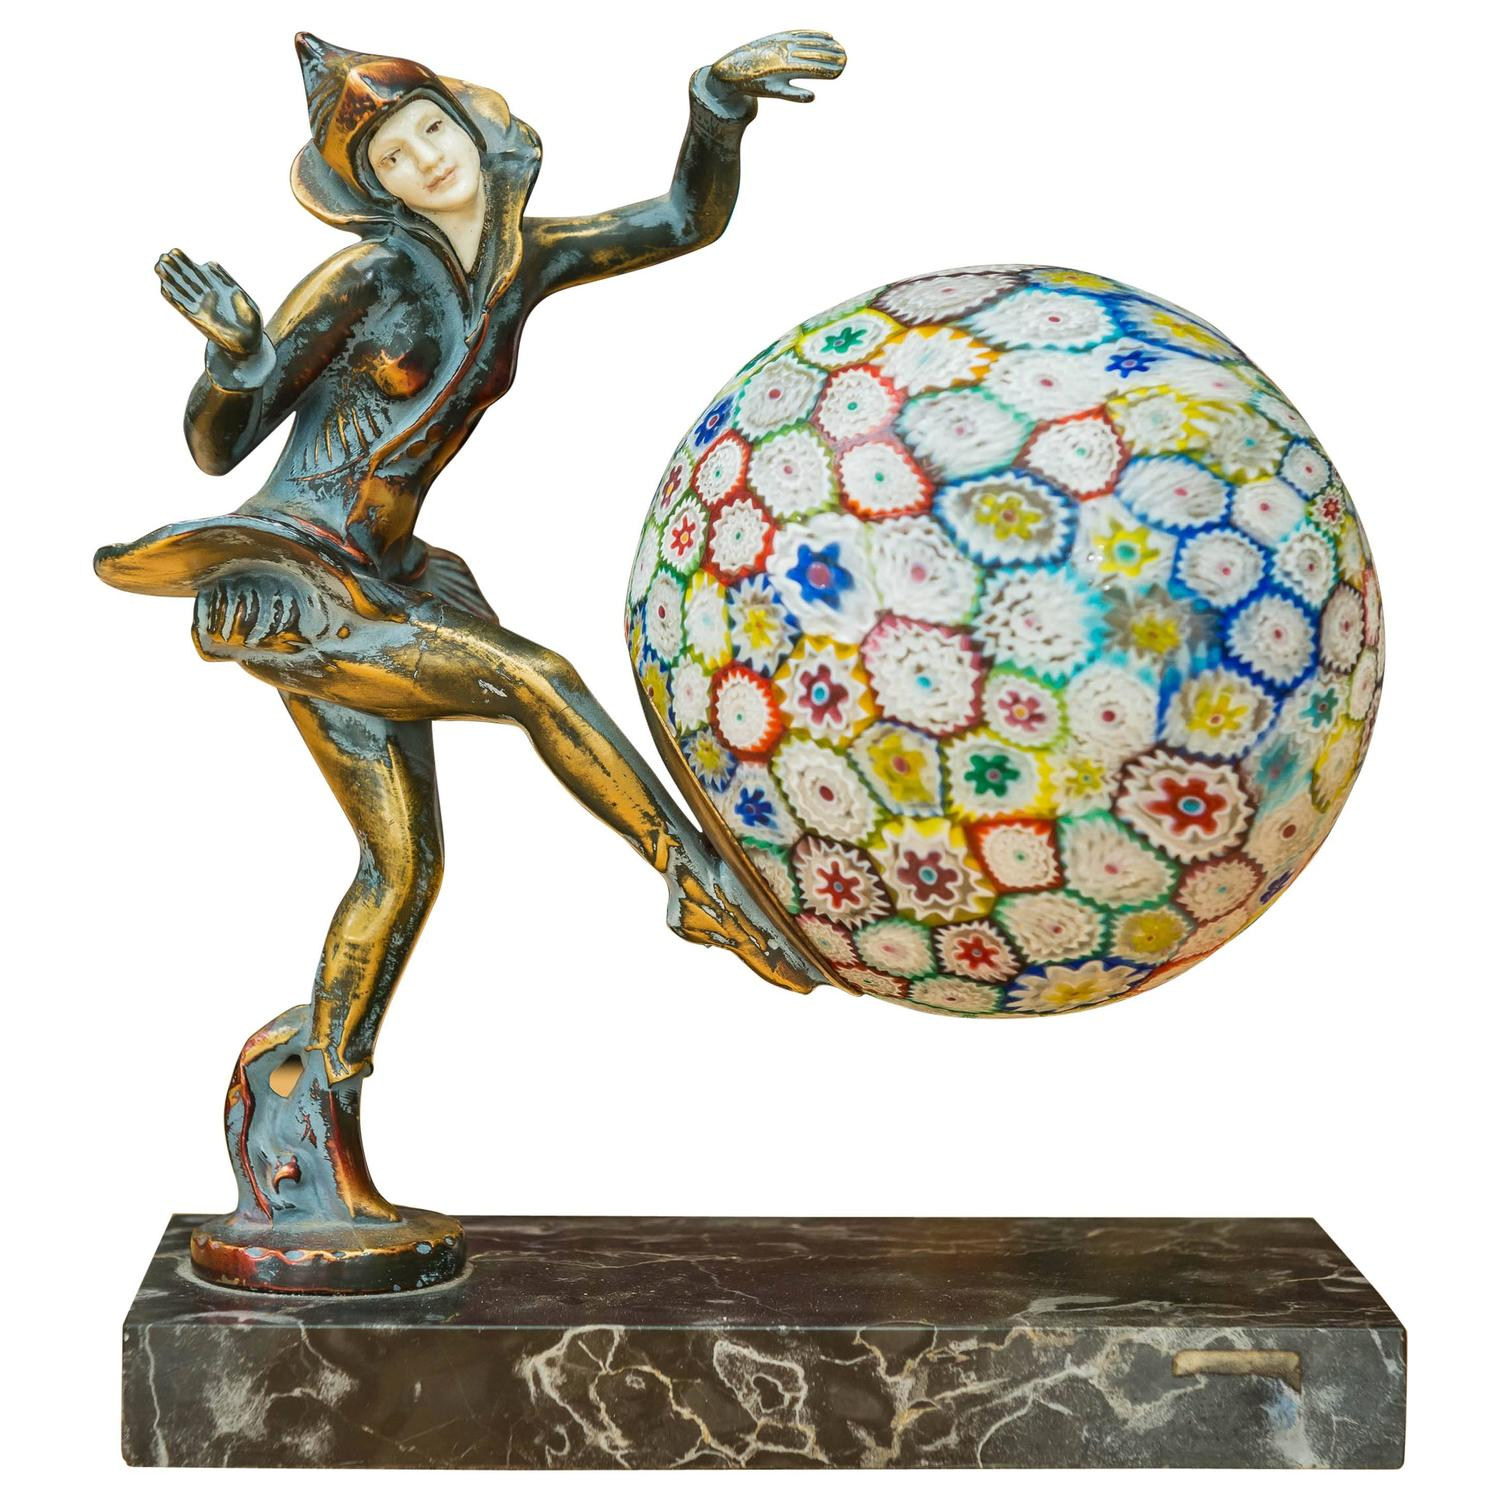 Gerda gerdago art deco harlequin style dancer lamp at 1stdibs for Art deco style lamp